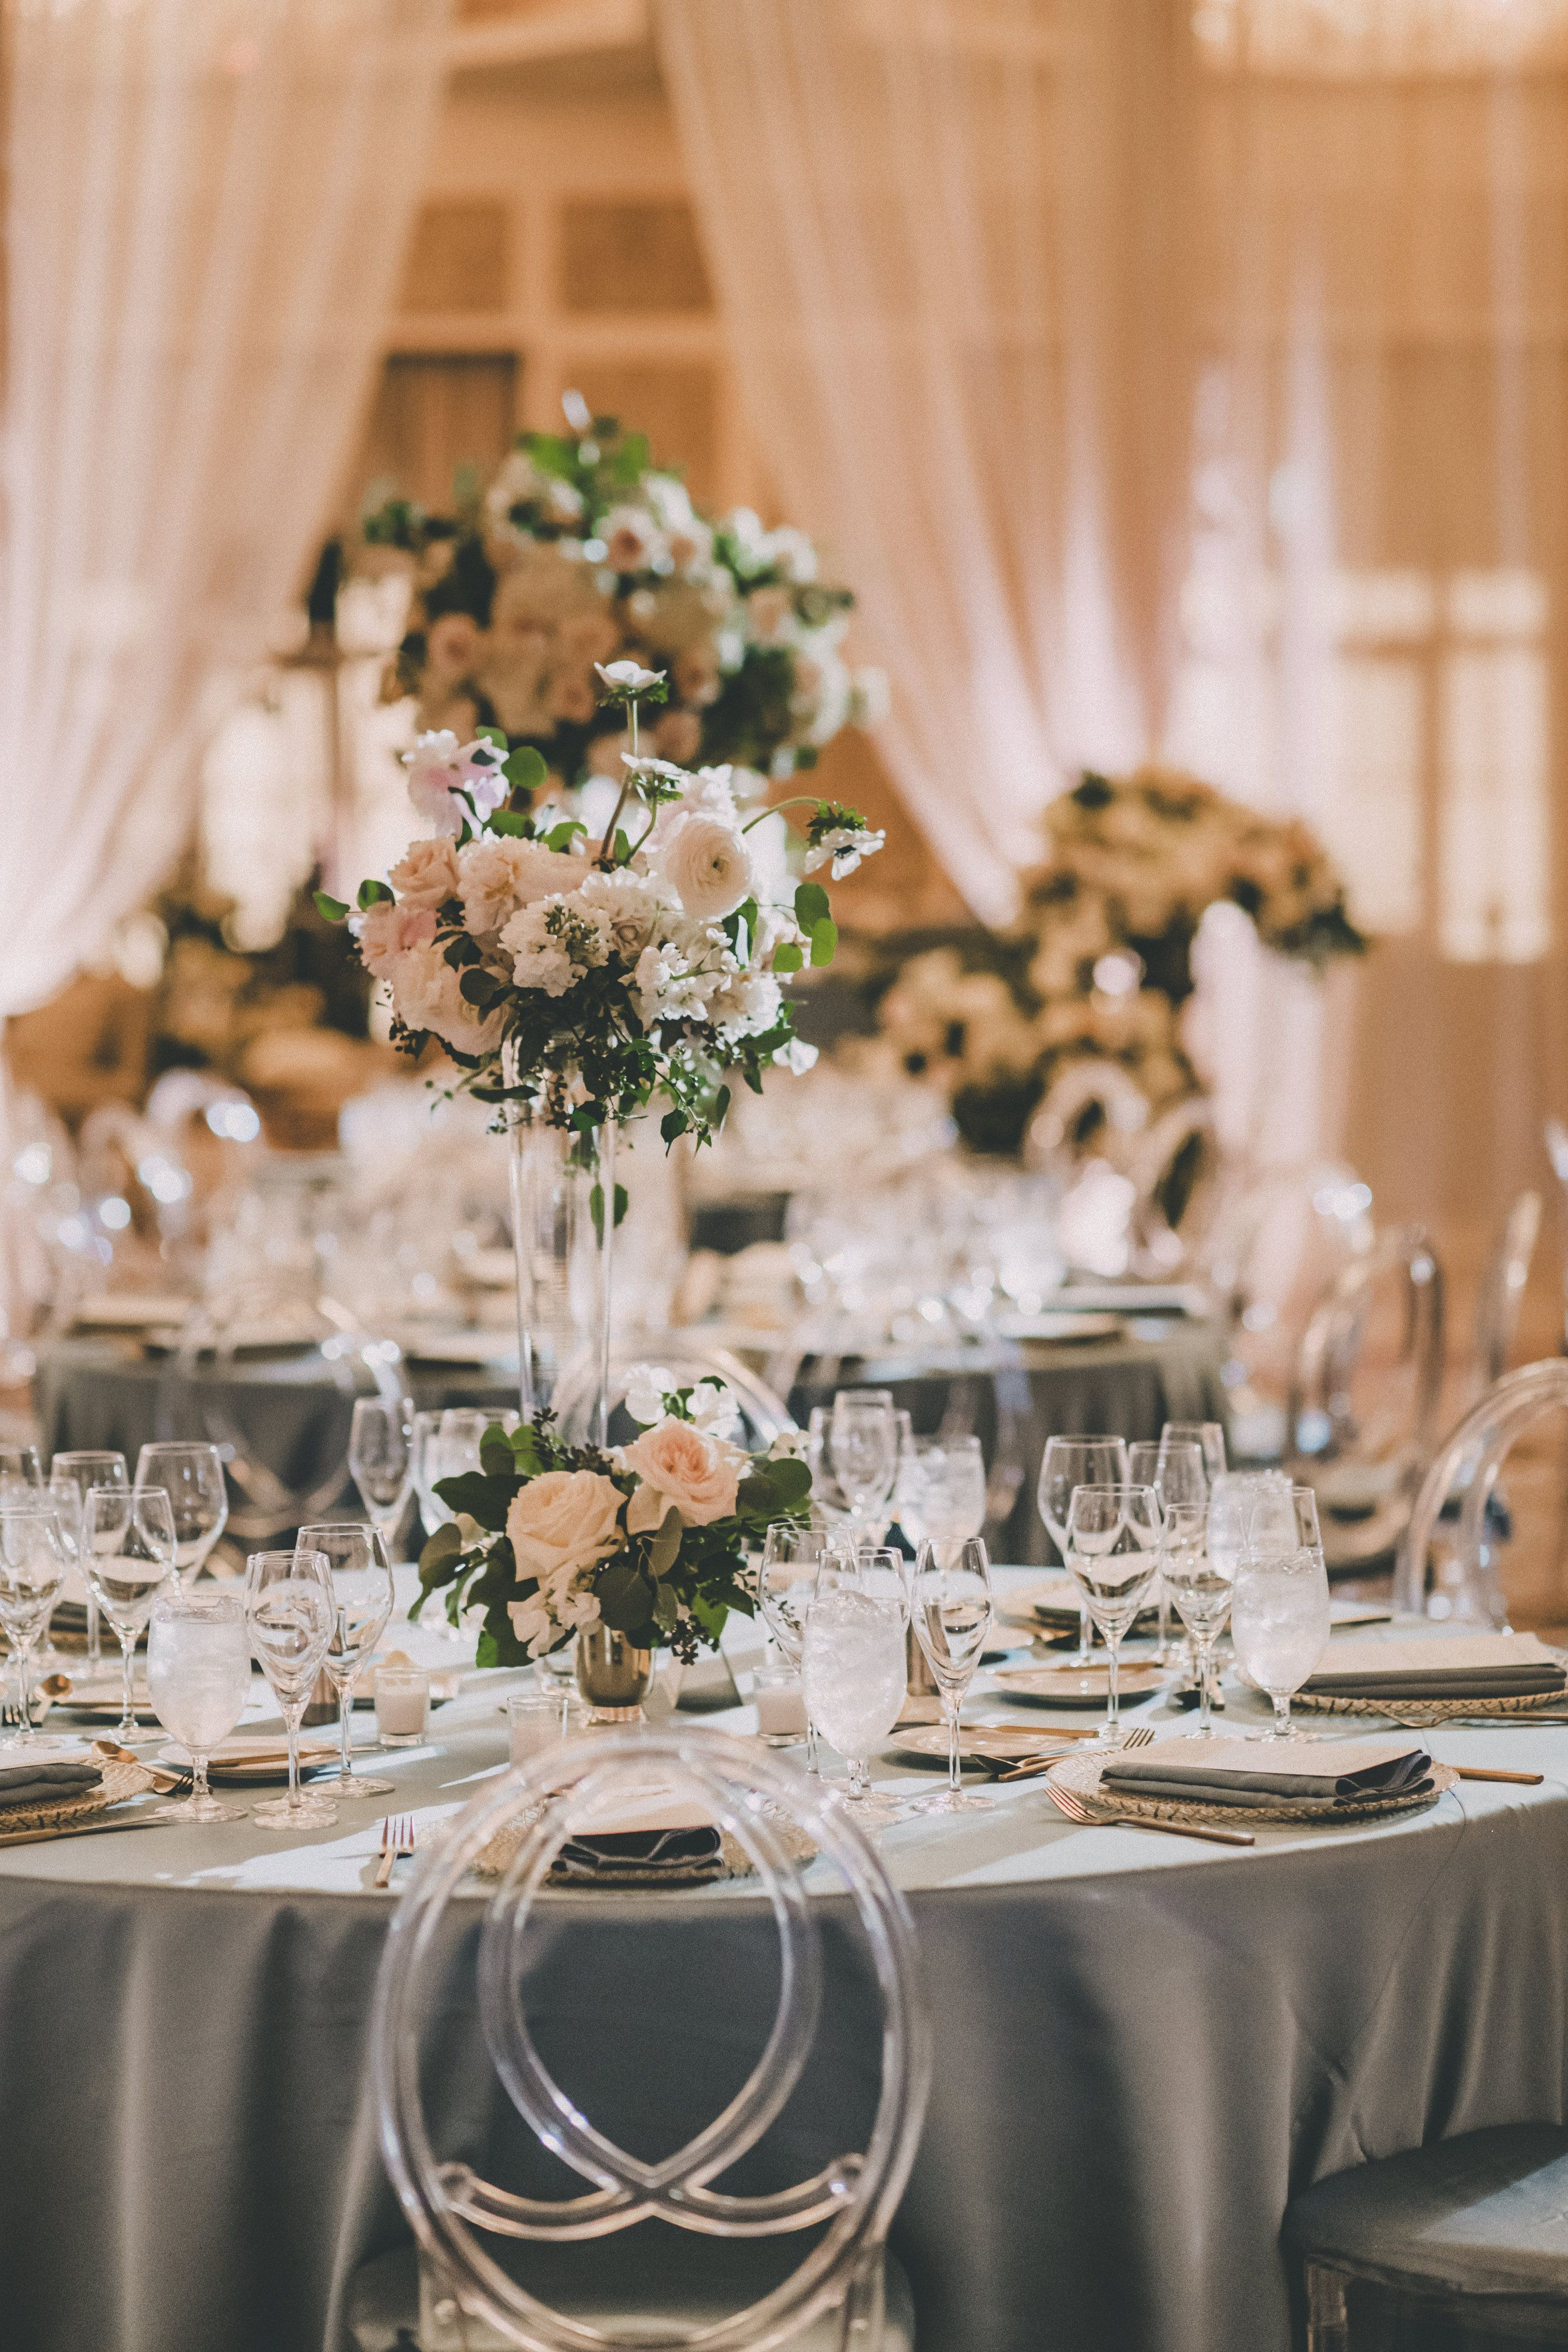 11 attractive Rose Gold Bowl Vase 2021 free download rose gold bowl vase of tall gold vases fresh beautiful ballroom is draped and filled with pertaining to tall gold vases fresh beautiful ballroom is draped and filled with three heights of fl